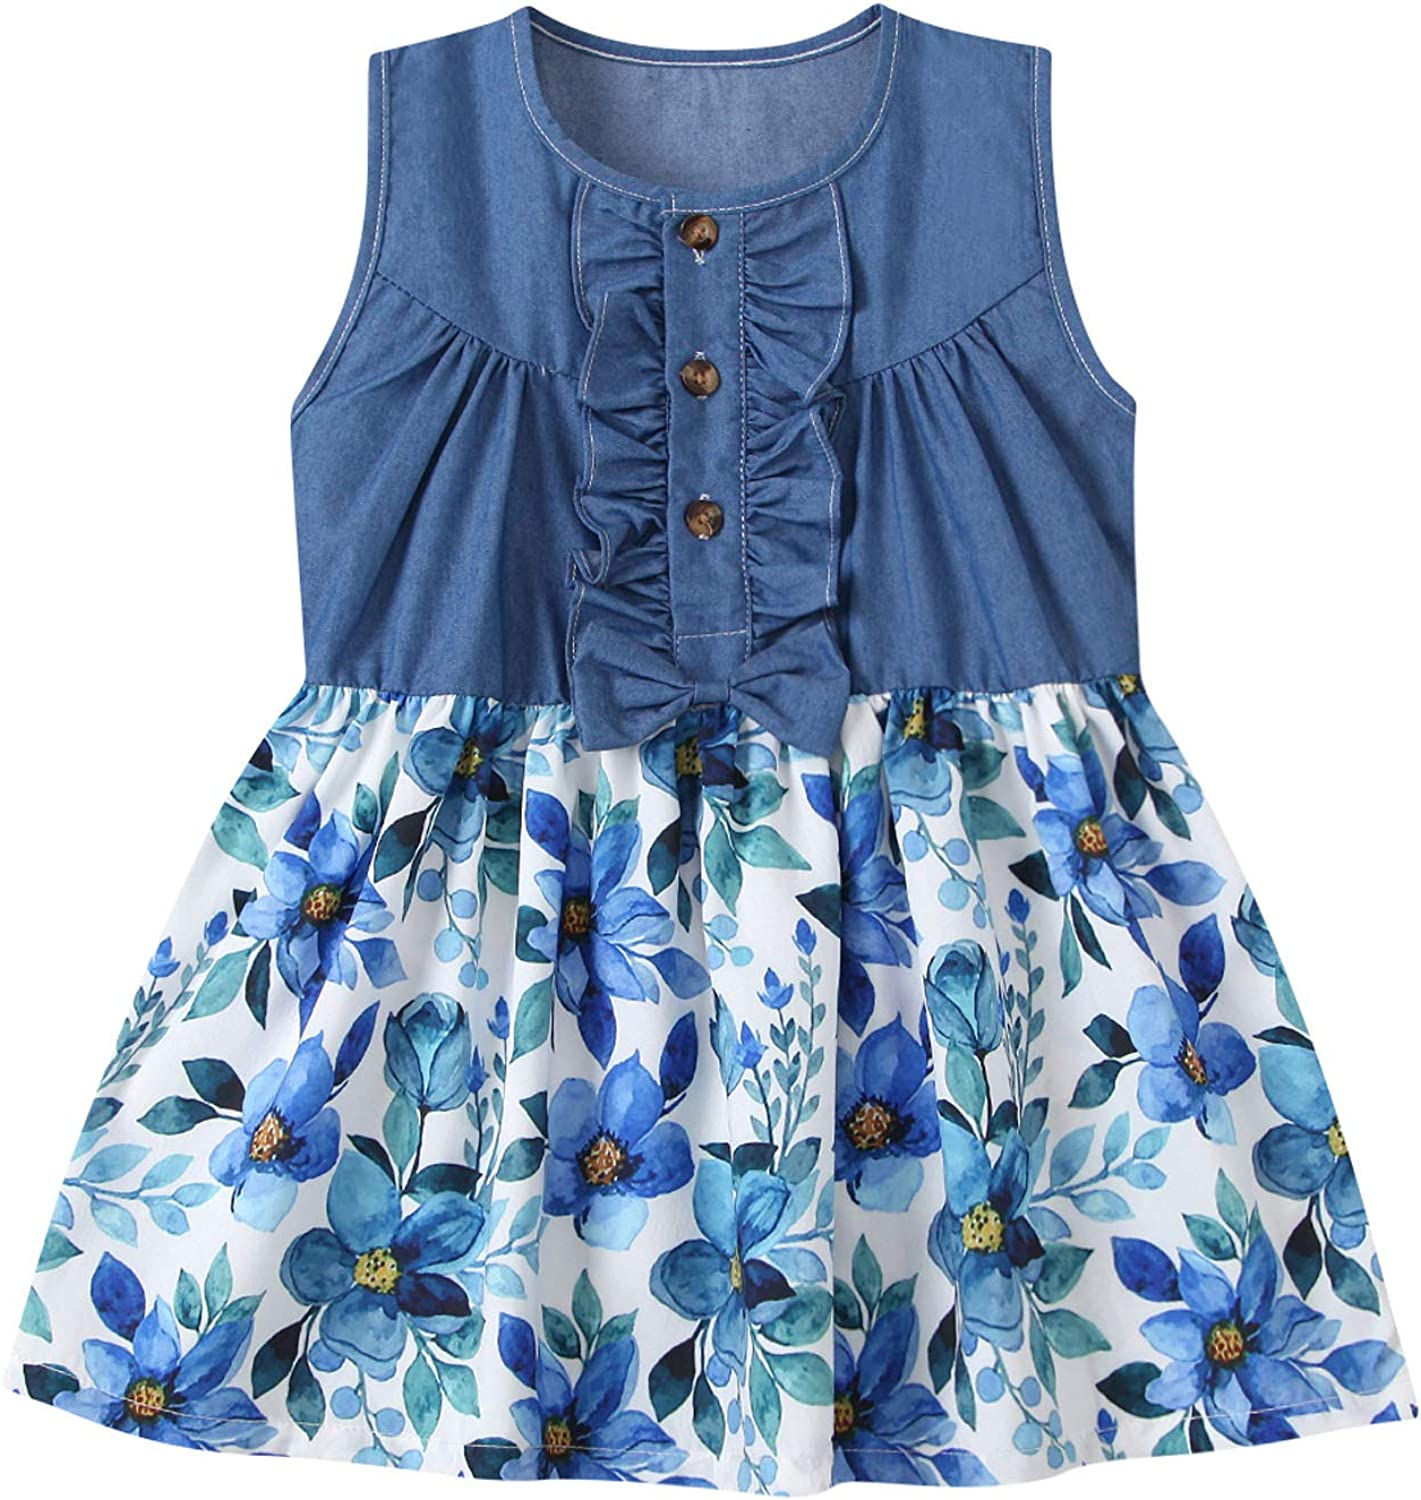 Shan-S Toddler Kid Baby Girl Top Denim Sleeveless Dress Princess Cheap Spring new work one after another